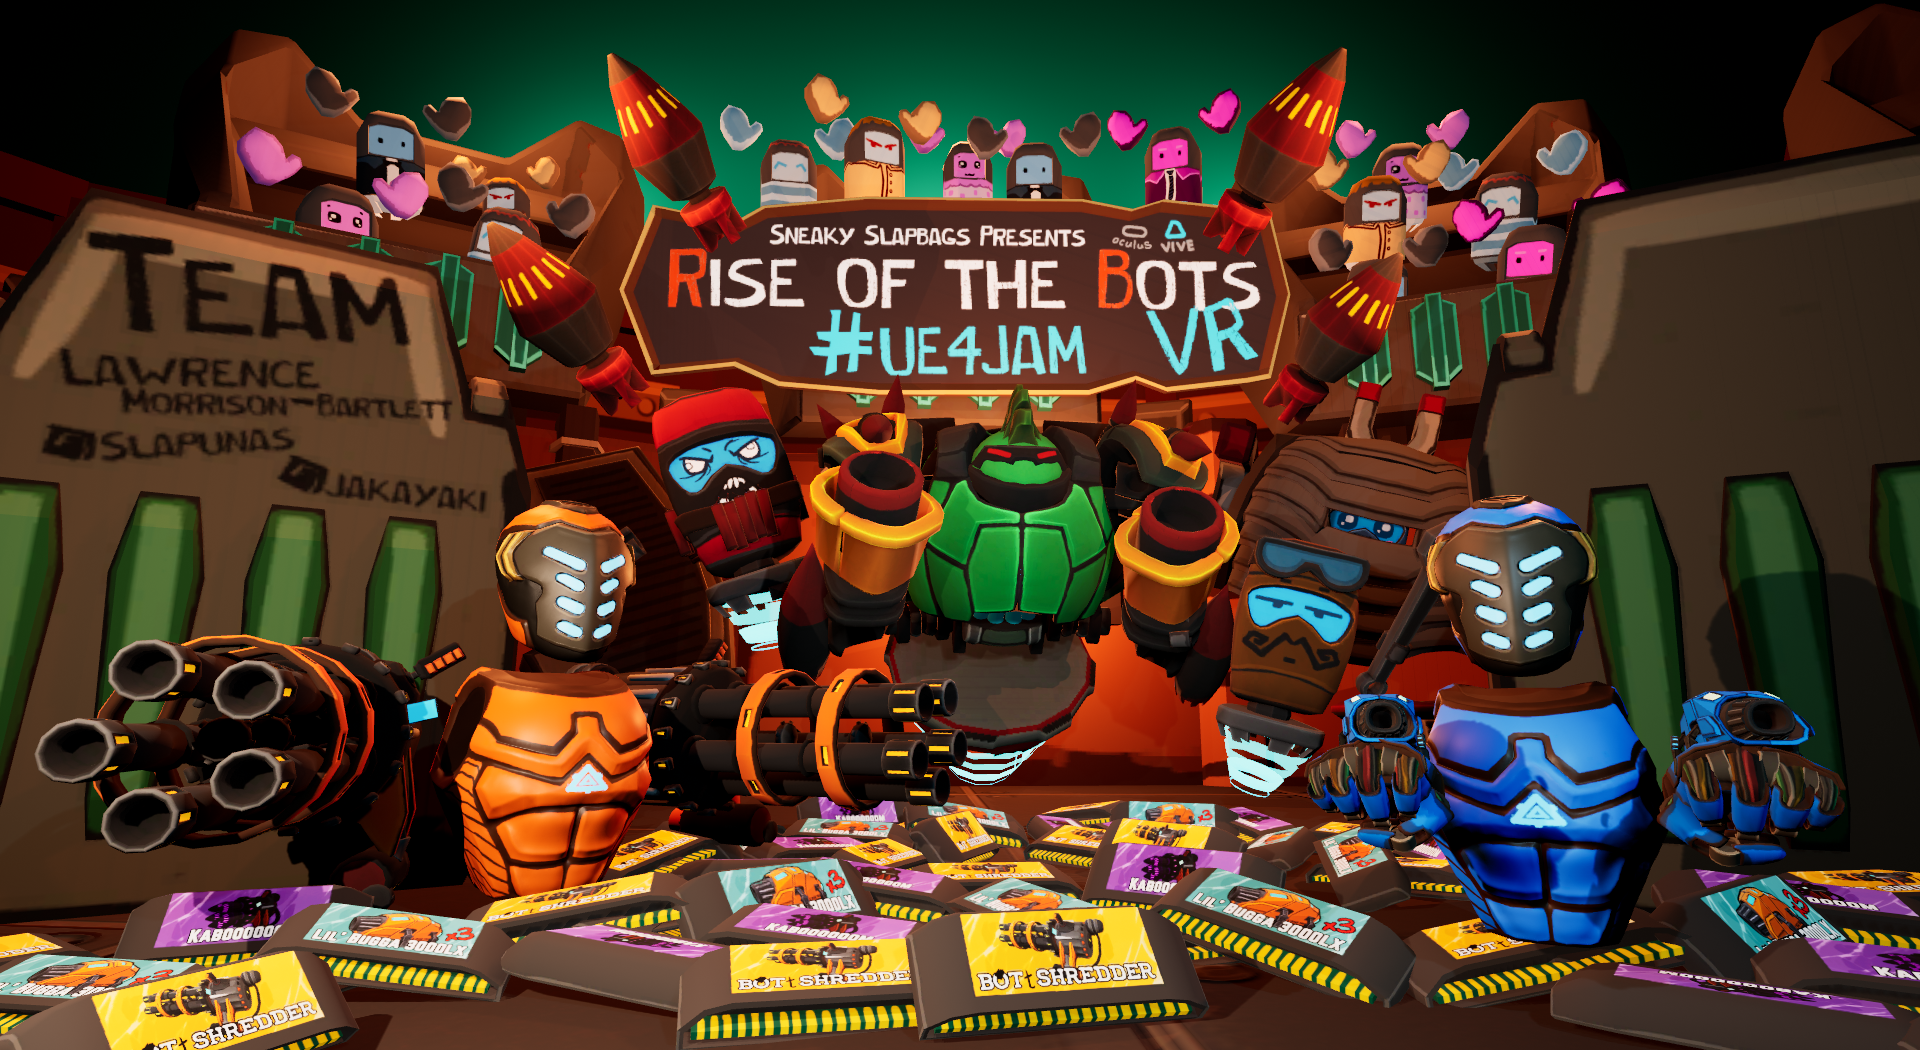 Rise of the Bots VR by Slapunas, jakayaki, 2sneaky for 2018 Spring